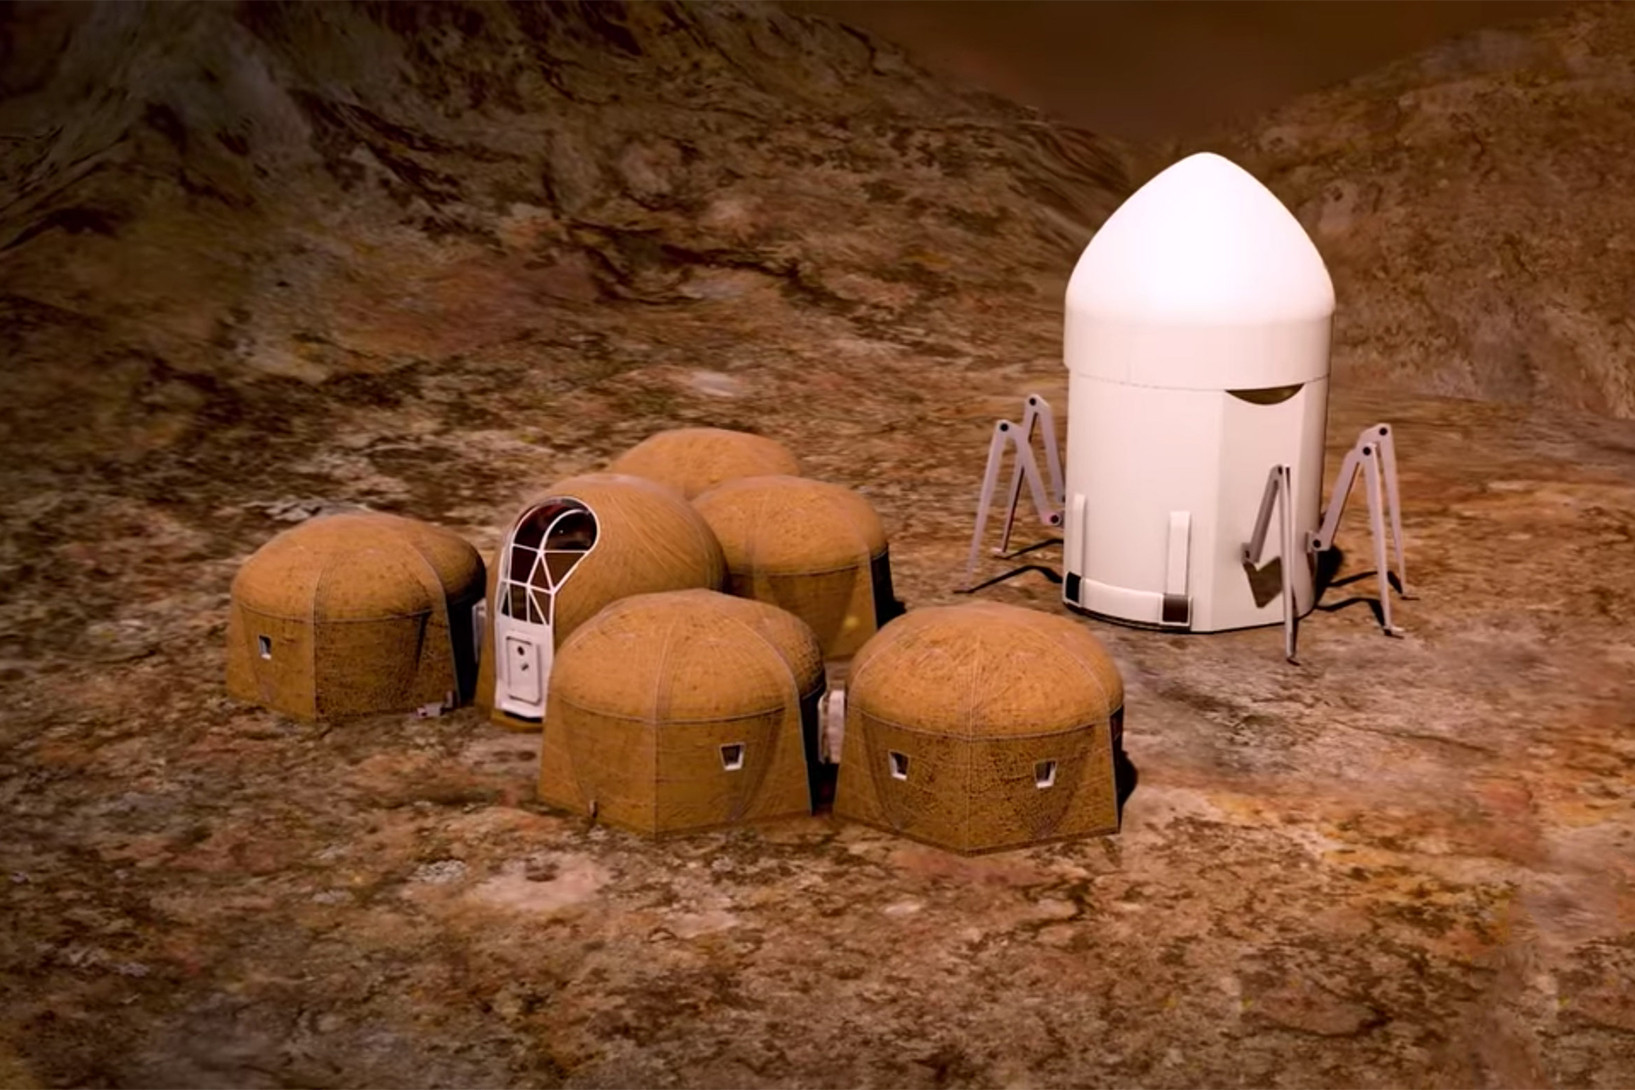 nasa-3d-printed-mars-habitat-competition-winners-2